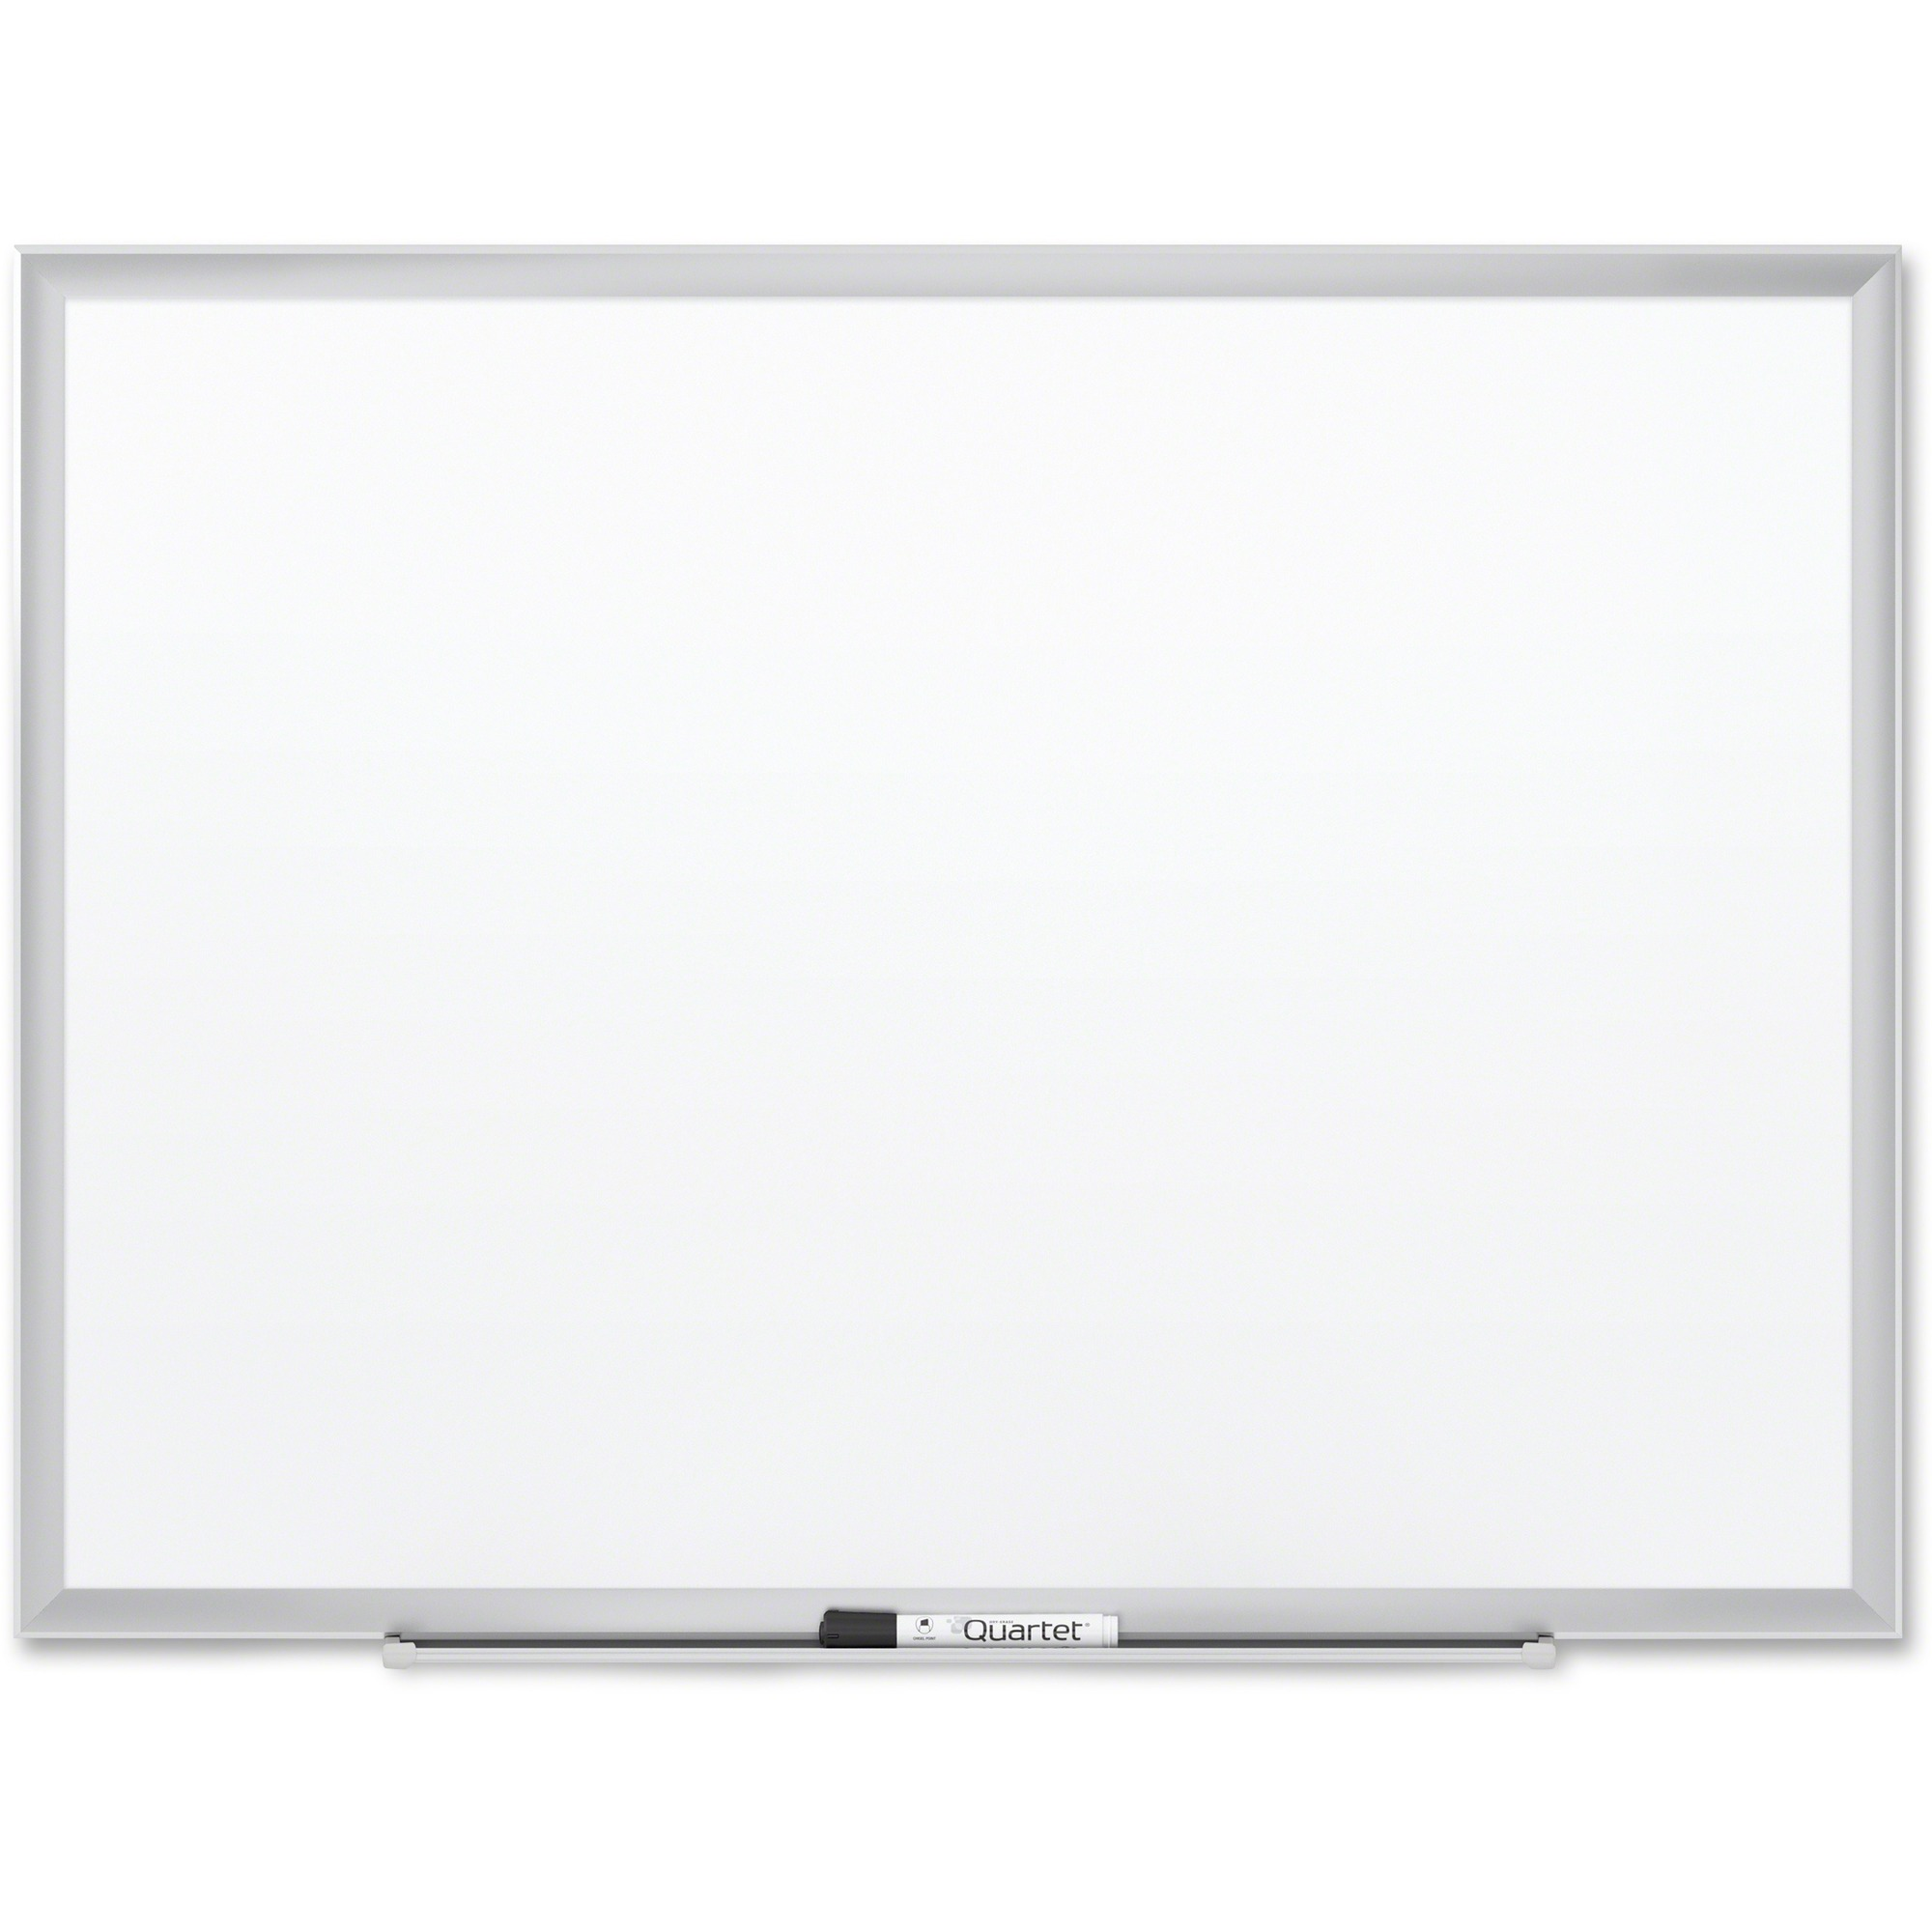 Acco Brands Corporation Quartet® Premium Duramax® Porcelain Magnetic Whiteboard, 4 X 3, Silver Aluminum Frame - 48 (4 Ft) Width X 36 (3 Ft) Height - White Porcelain Surface - Silver Aluminum Frame - Rectangle - Horizontal/vertical - 1 / Each - Taa